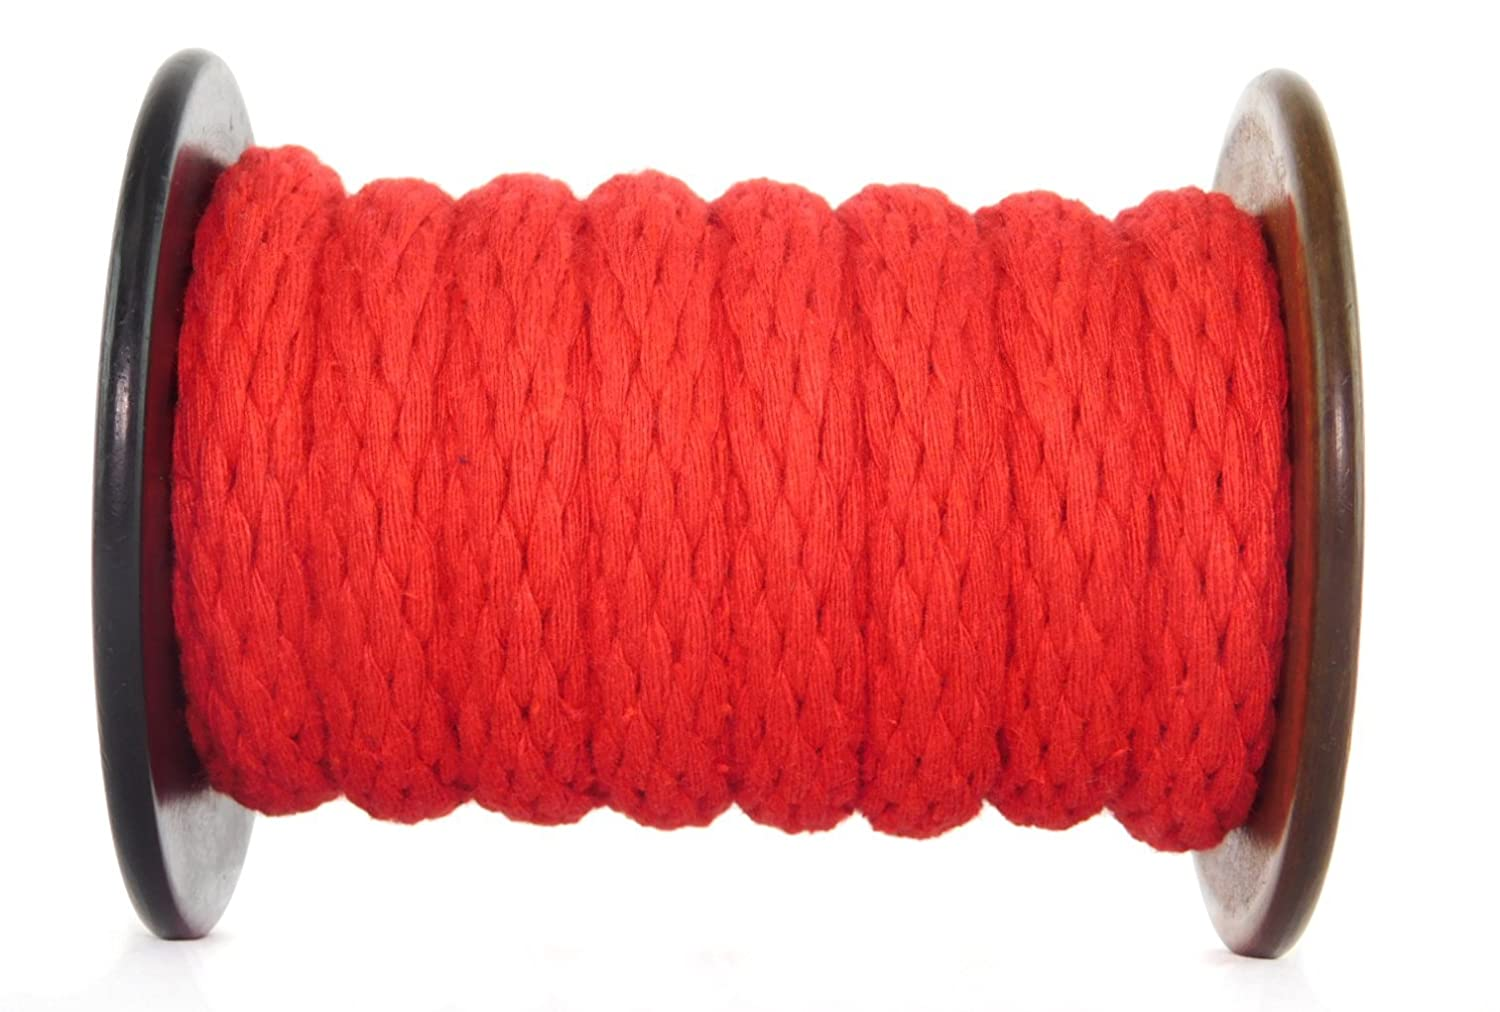 Used as Sash Cord Utility Rope and More Ravenox Solid Braid Cotton Rope Variety of Colors and Lengths Macrame Projects Clothesline Made in The USA